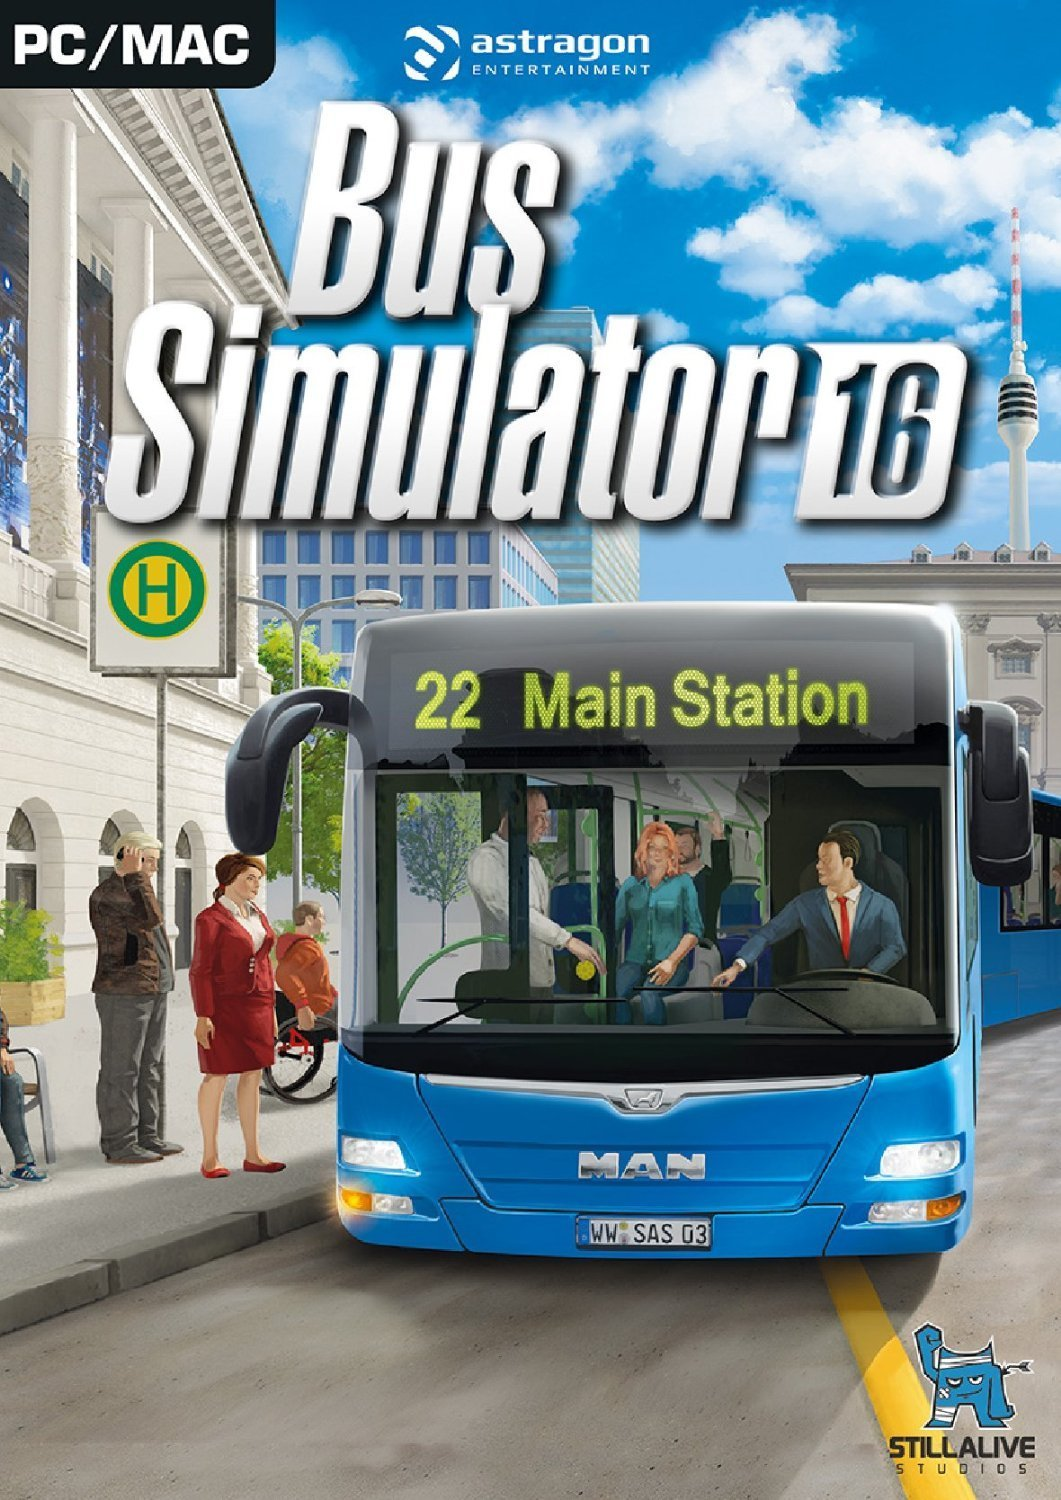 Official Bus Simulator 16 (PC)